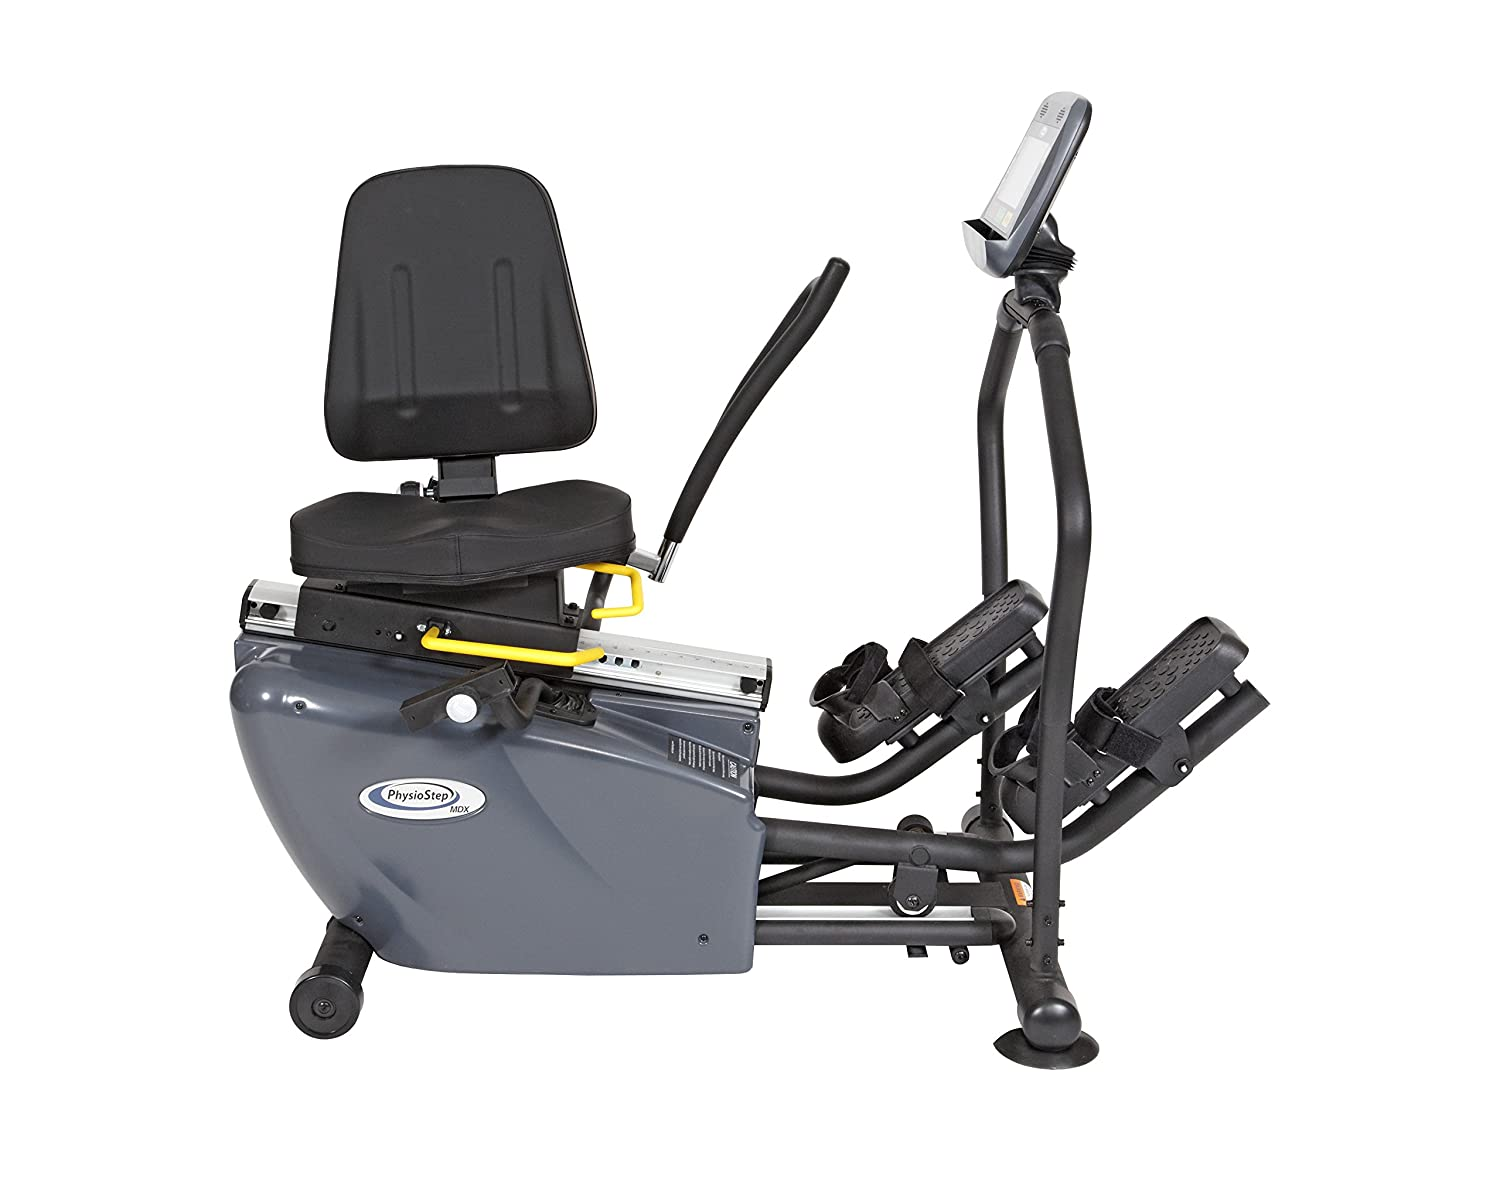 Recumbent Bikes For Overweight People For Big Amp Heavy People